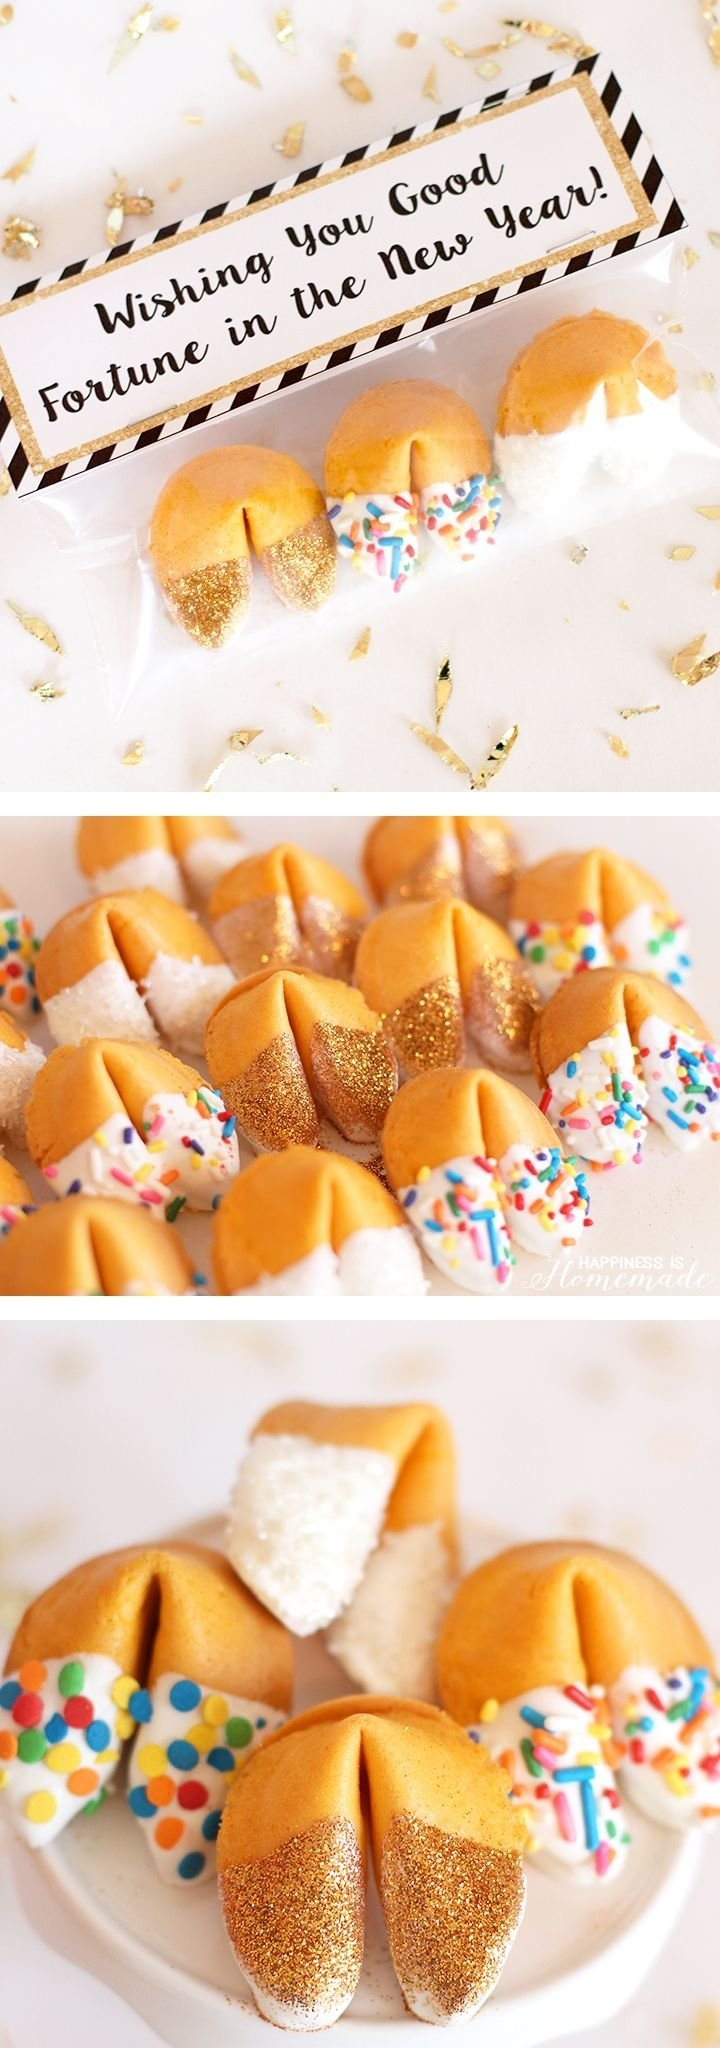 10 Ideal New Years Eve Desserts Party Ideas 41 best new years eve wedding ideas images on pinterest new years 2020